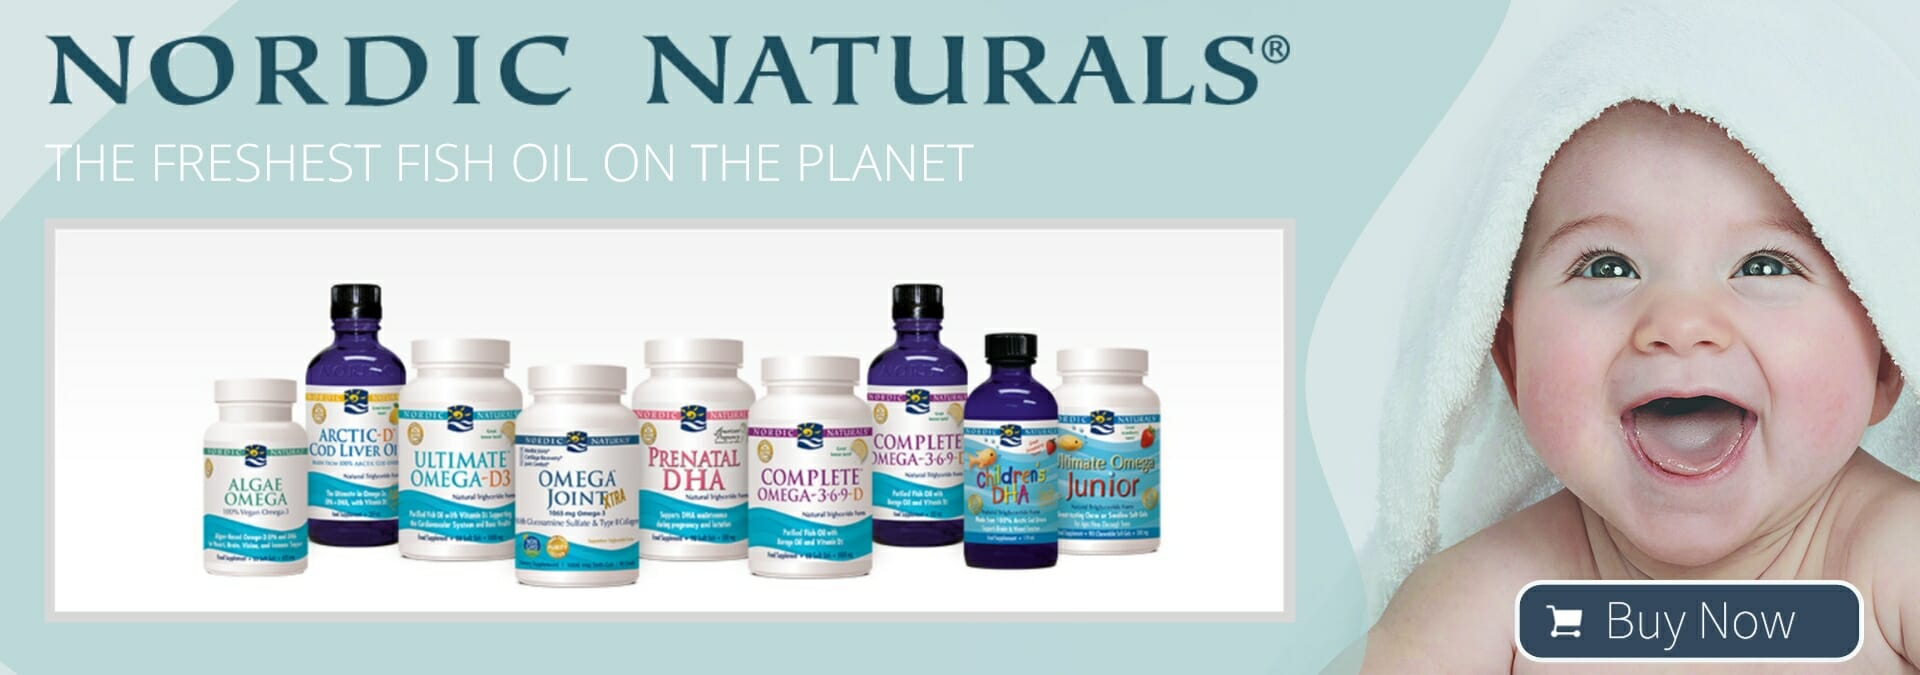 Nordic Naturals Homepage Banner